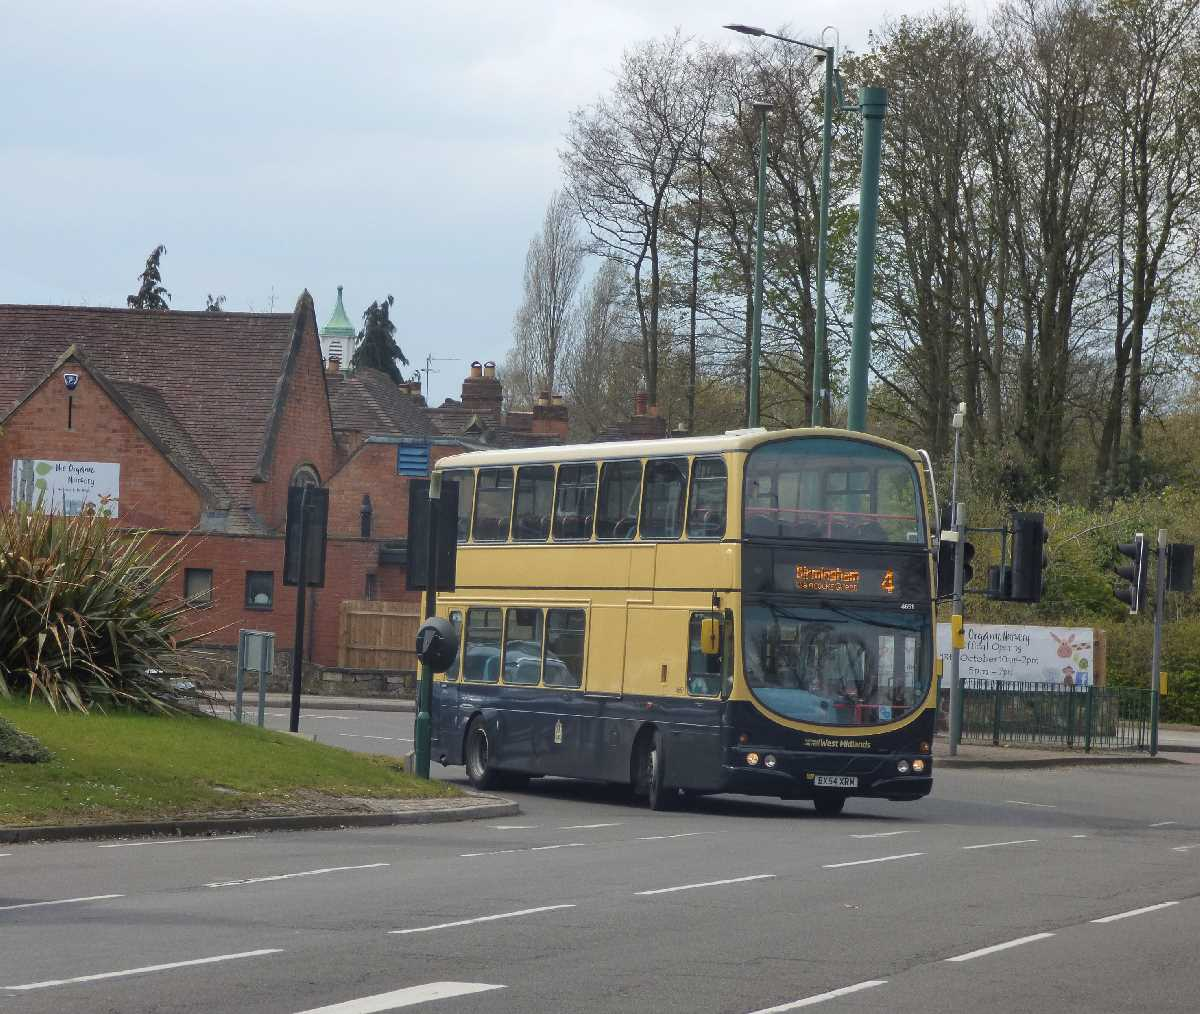 4651 at the roundabout in Solihull